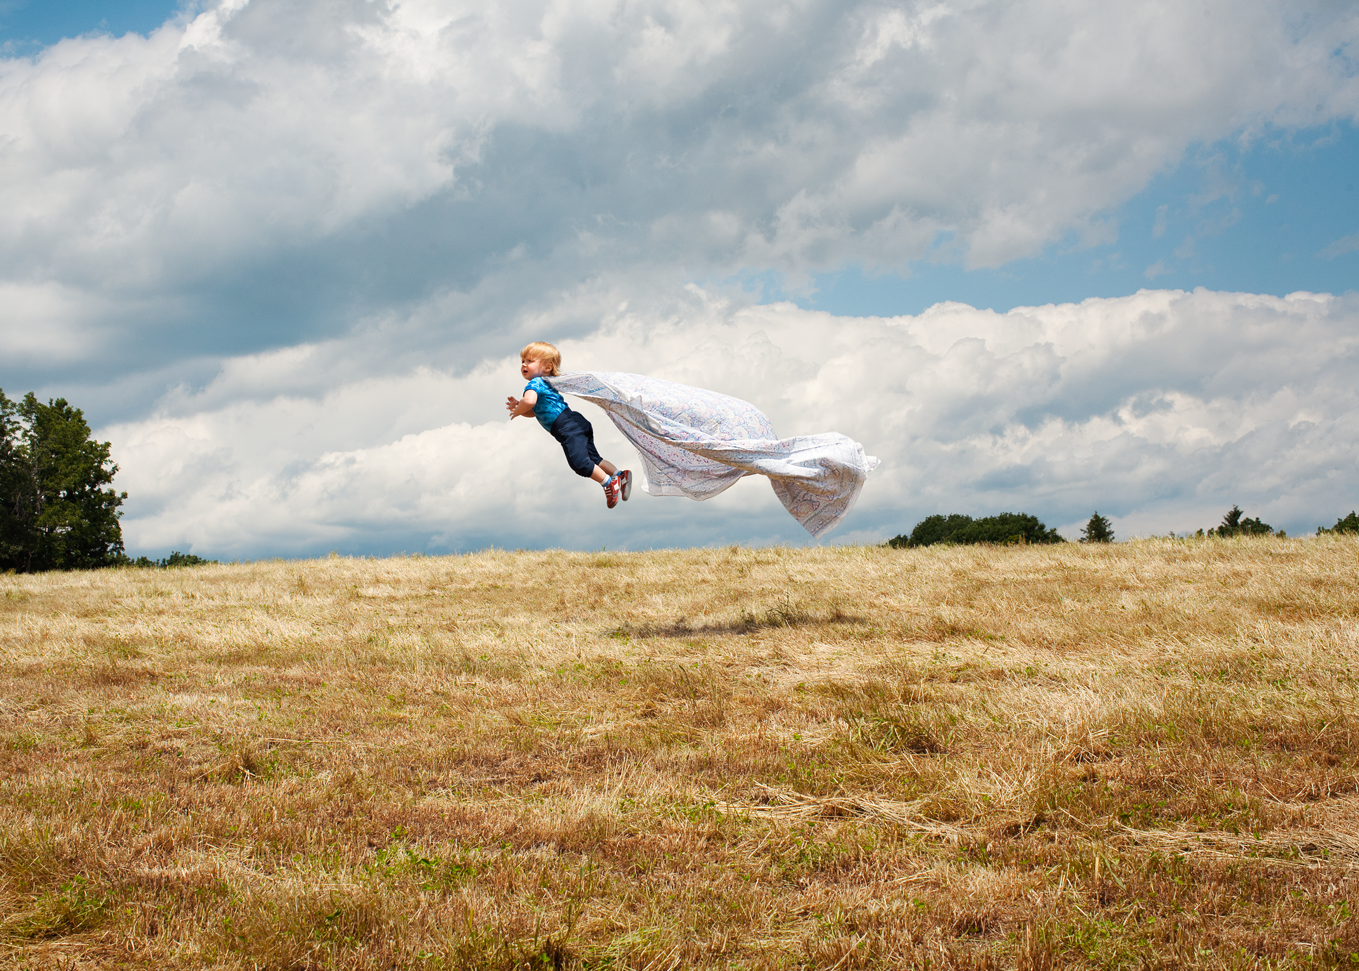 Color photograph of a toddler wearing a cape and seemingly flying in a wheat field.